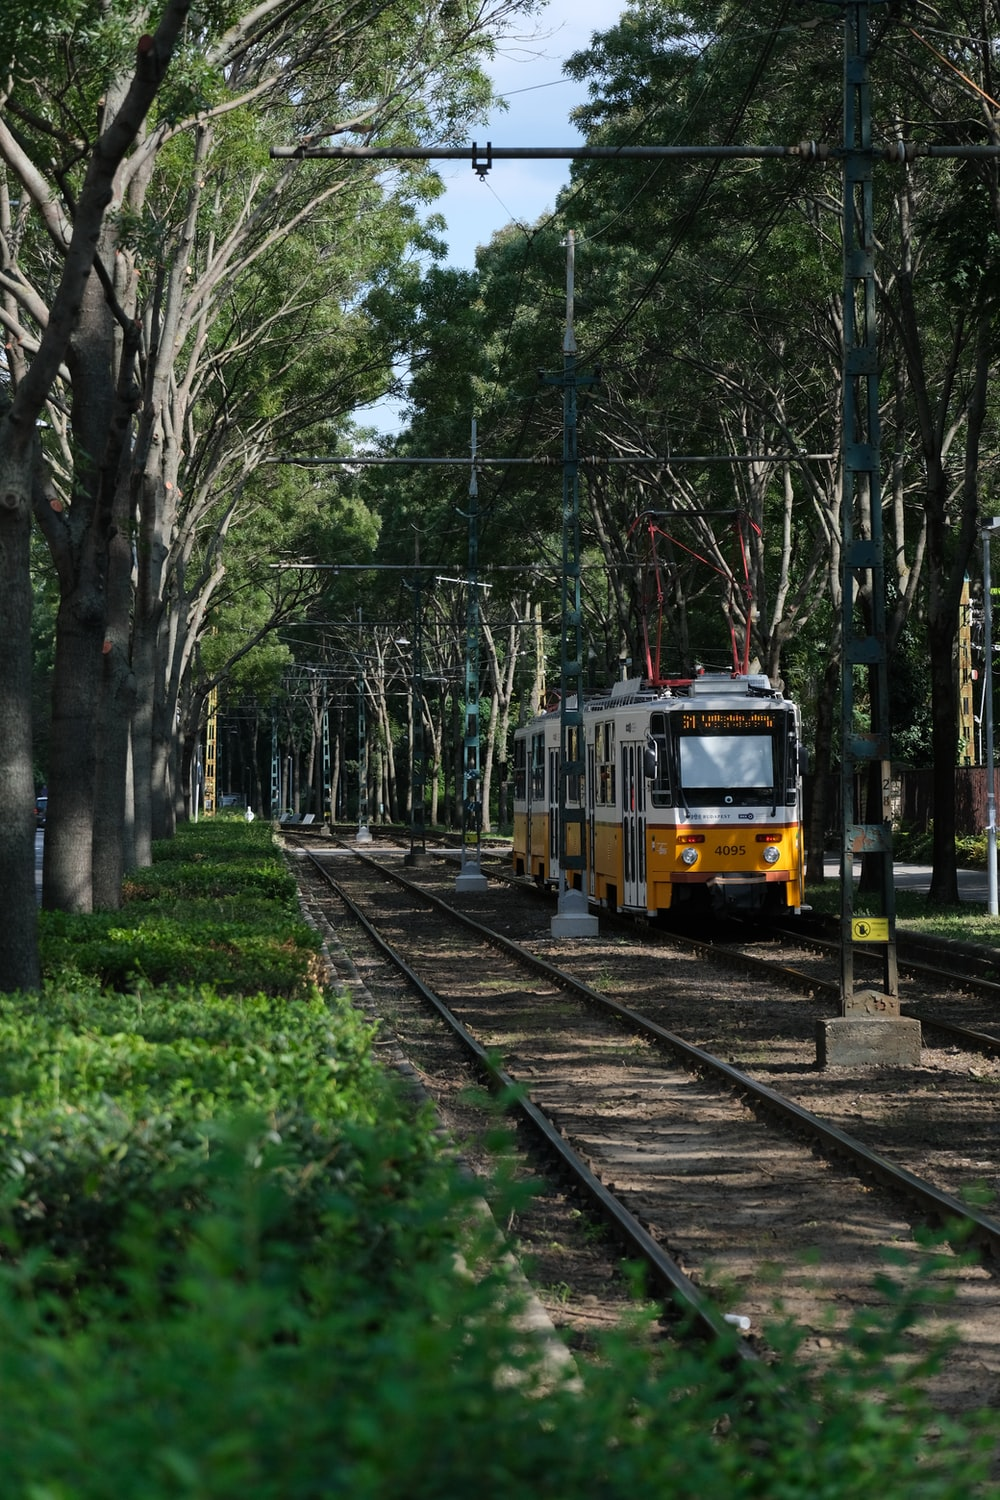 yellow and red train on rail tracks surrounded by green trees during daytime